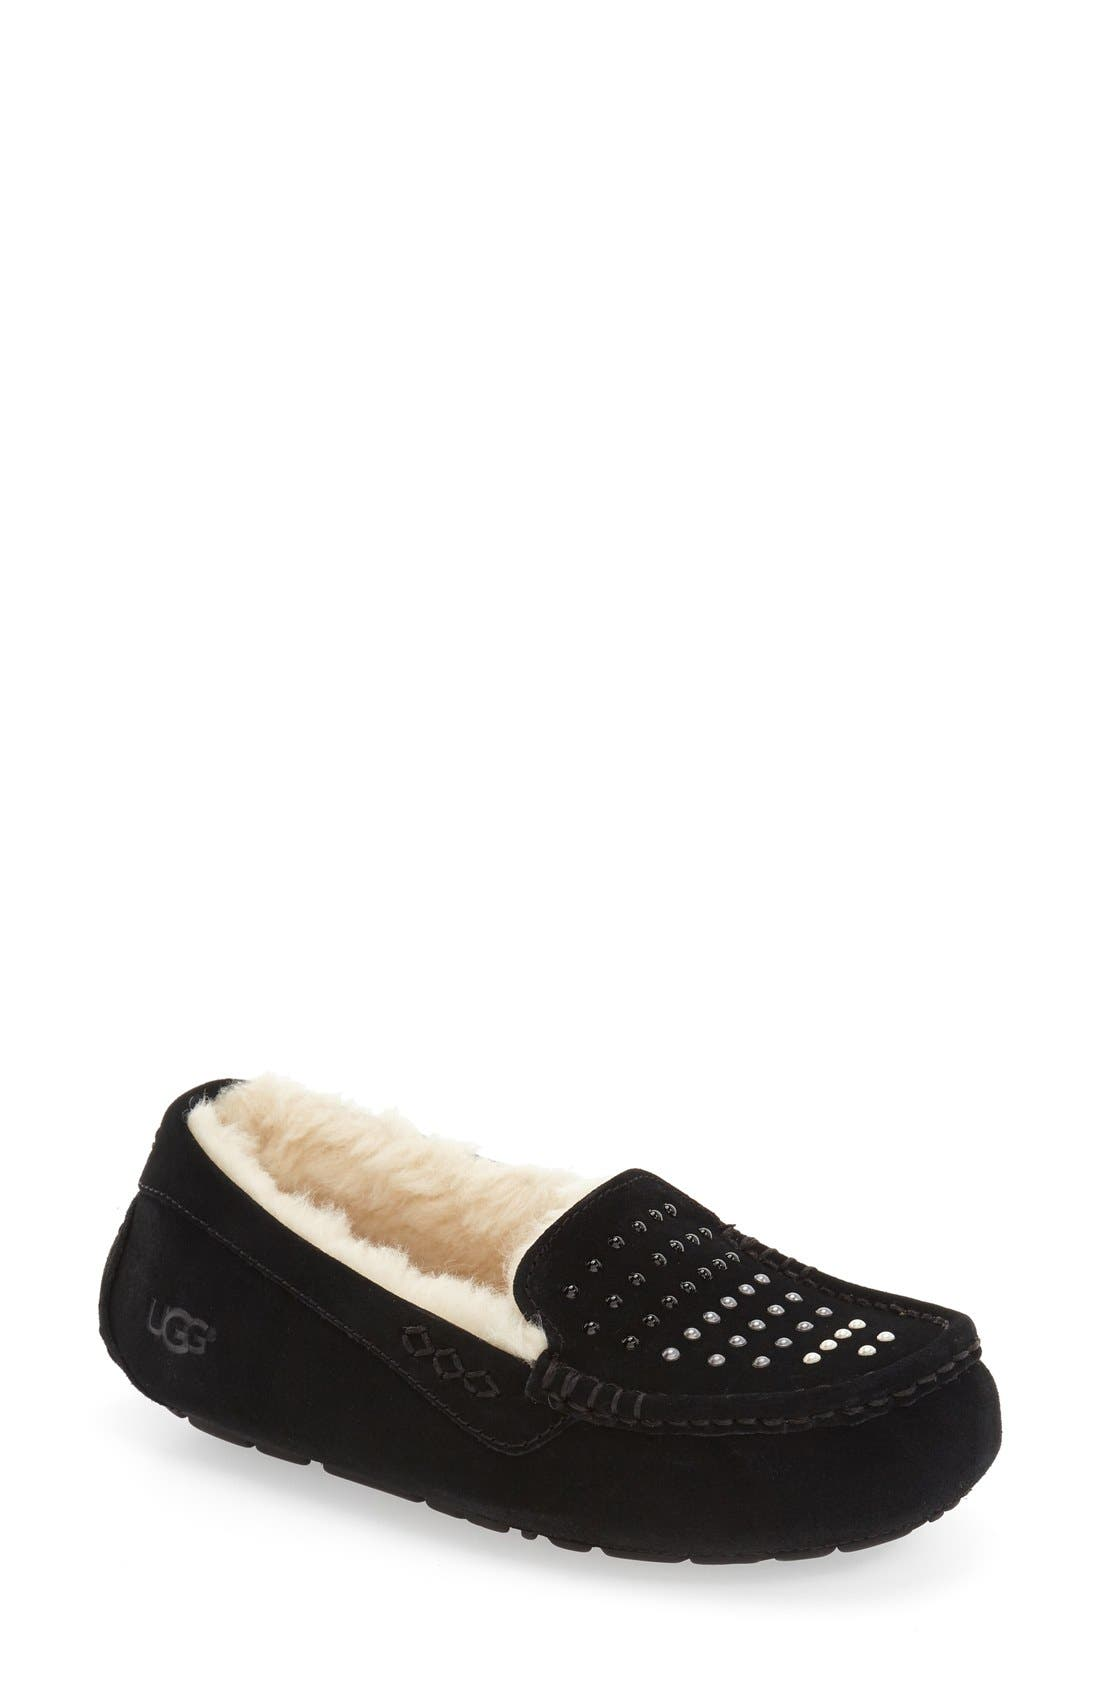 Main Image - UGG® 'Ansley' Water Resistant Slipper (Women)